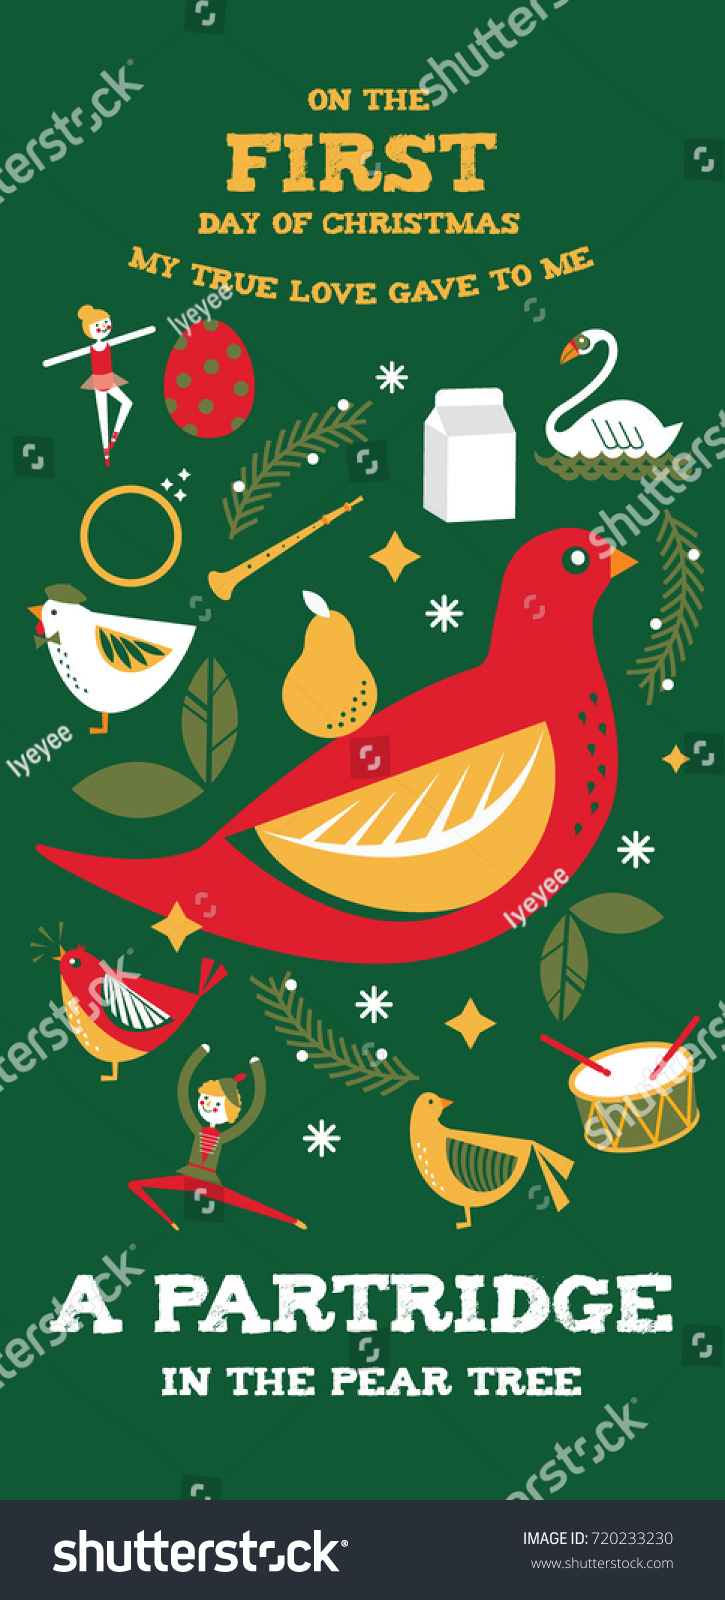 hight resolution of first day of christmas from the twelve days of christmas greetings template vector illustration